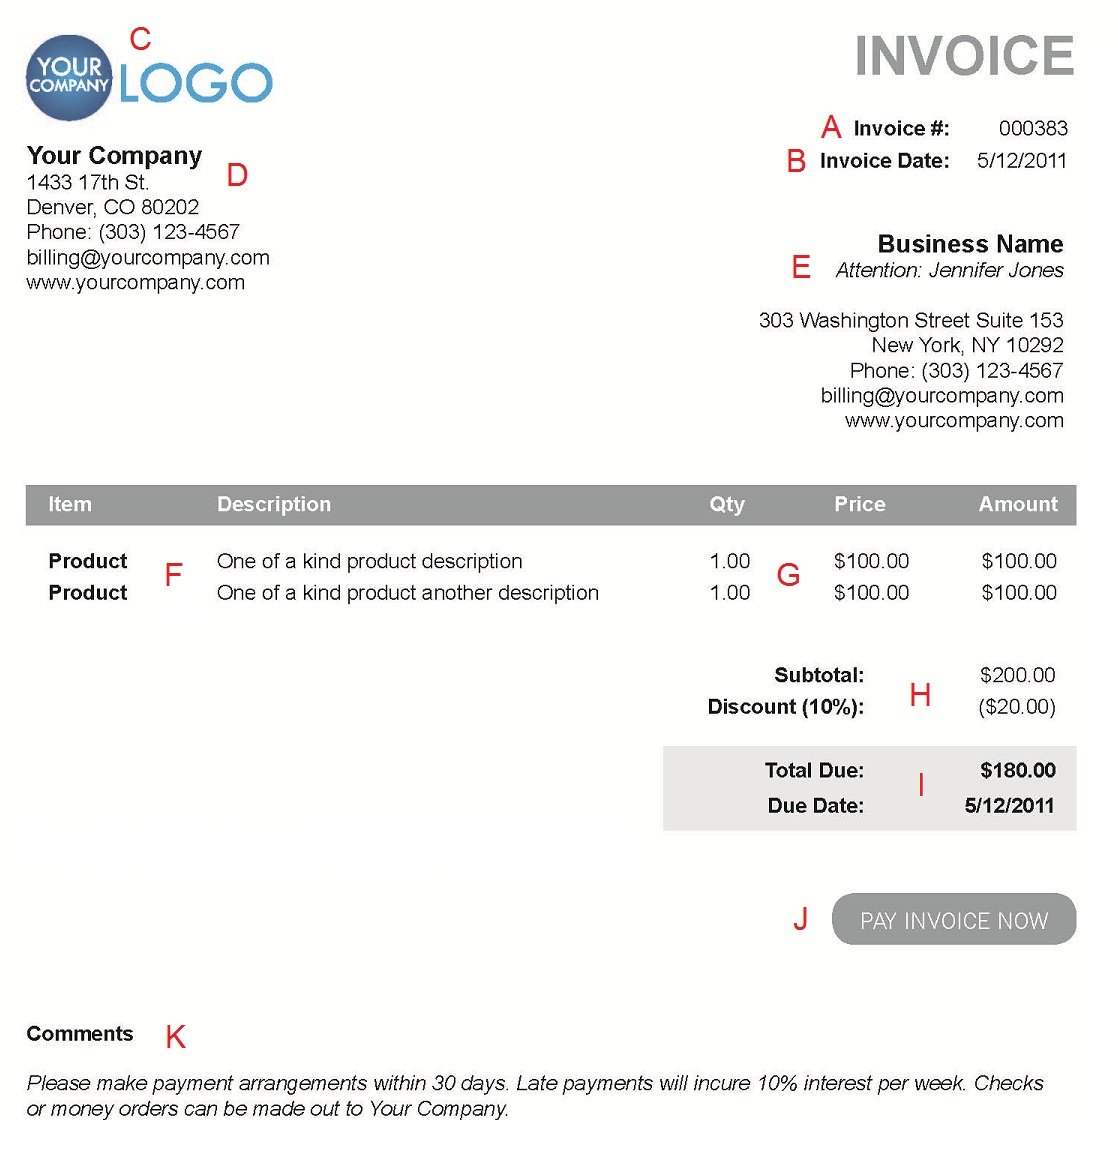 Coolmathgamesus  Splendid The  Different Sections Of An Electronic Payment Invoice With Inspiring A  With Comely Igf Invoice Finance Also Miscellaneous Invoice In Addition Canada Customs Commercial Invoice And Linux Invoicing Software As Well As Invoice Template Services Additionally Free Invoices Software From Paysimplecom With Coolmathgamesus  Inspiring The  Different Sections Of An Electronic Payment Invoice With Comely A  And Splendid Igf Invoice Finance Also Miscellaneous Invoice In Addition Canada Customs Commercial Invoice From Paysimplecom